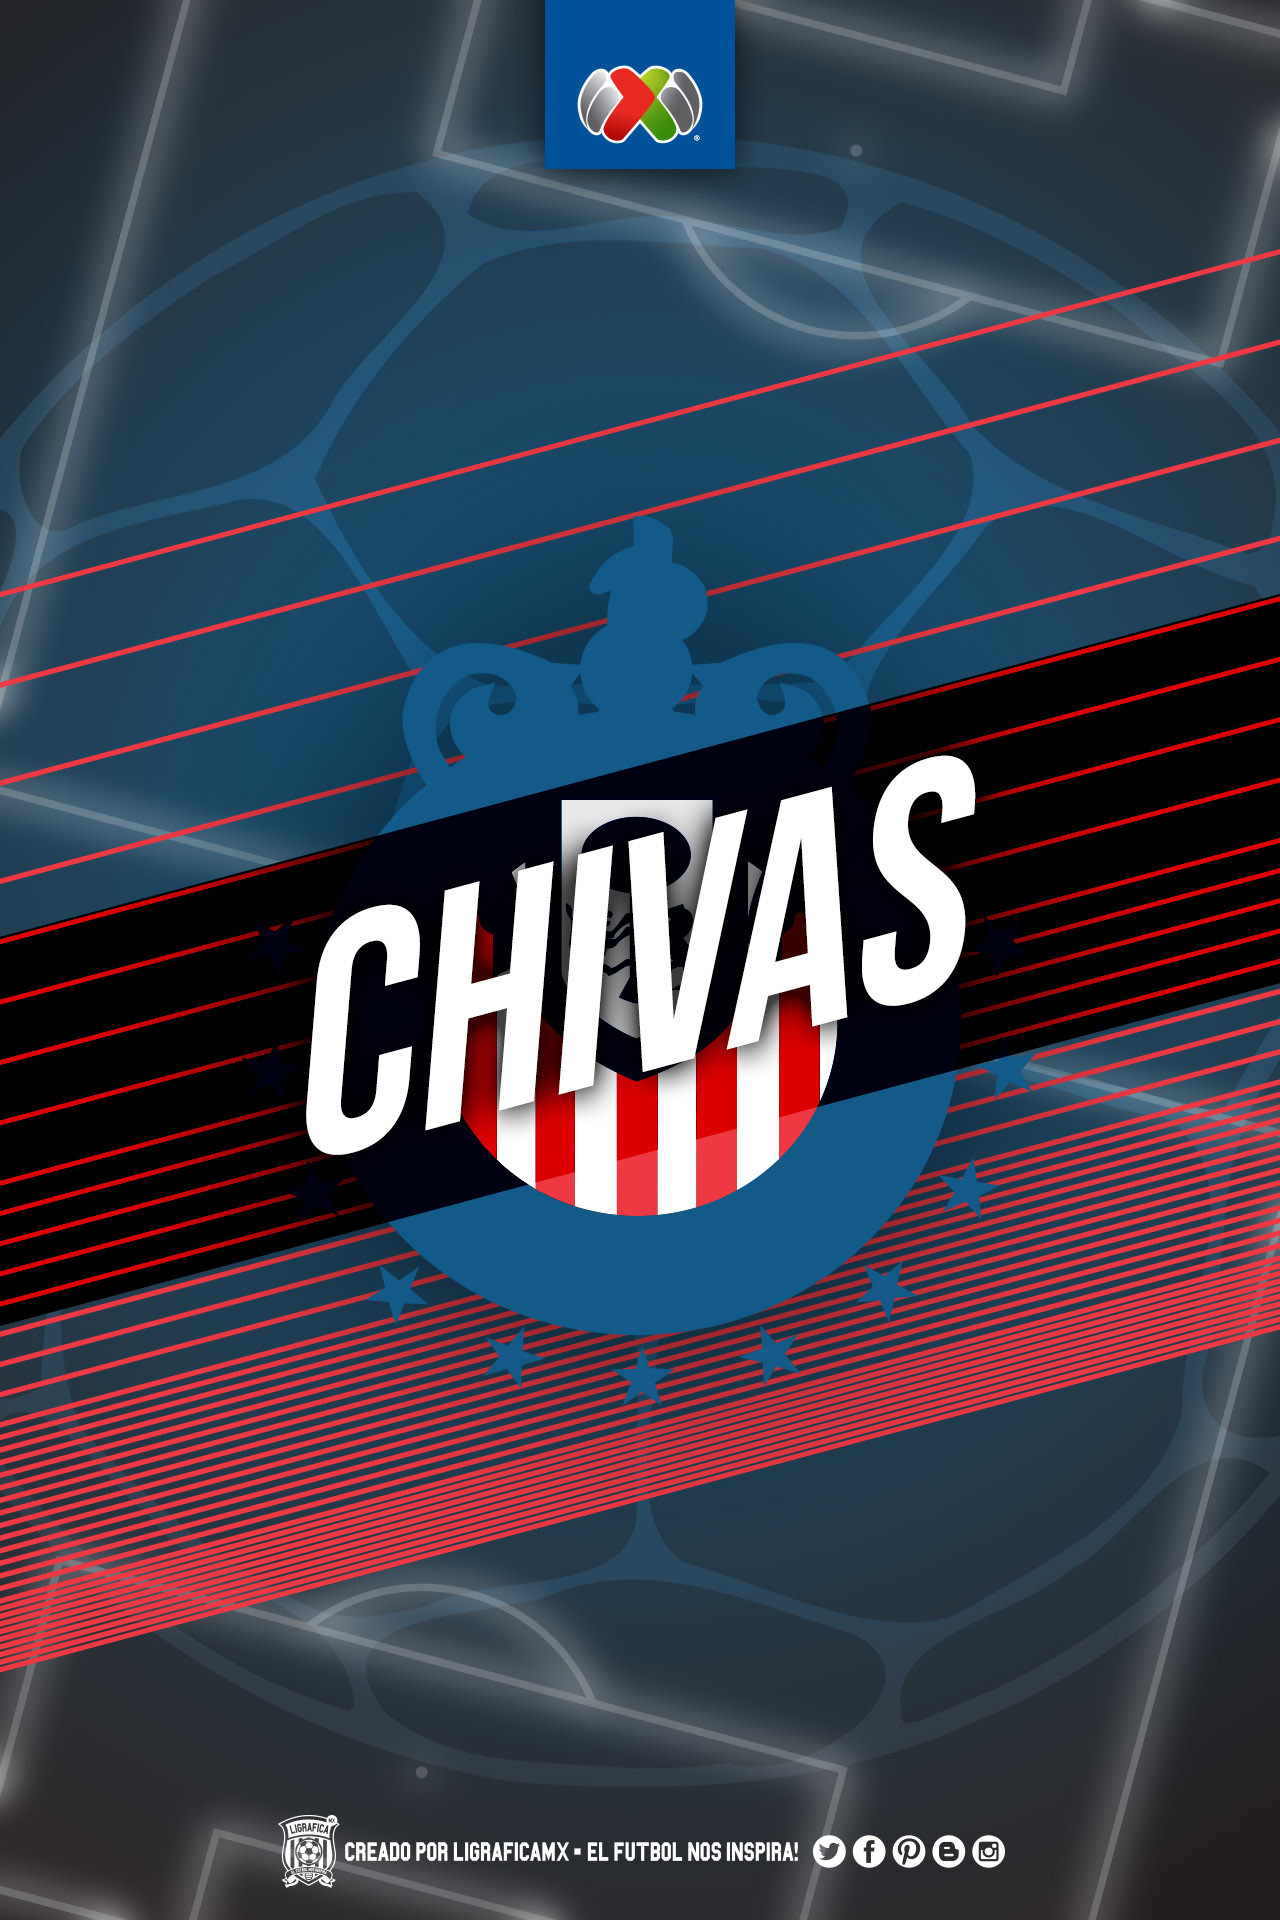 Chivas backgrounds 65 images 2432x1520 46 whiskey computer wallpapers chivas regal hd wide wallpaper for widescreen 52 wallpapers hd voltagebd Choice Image